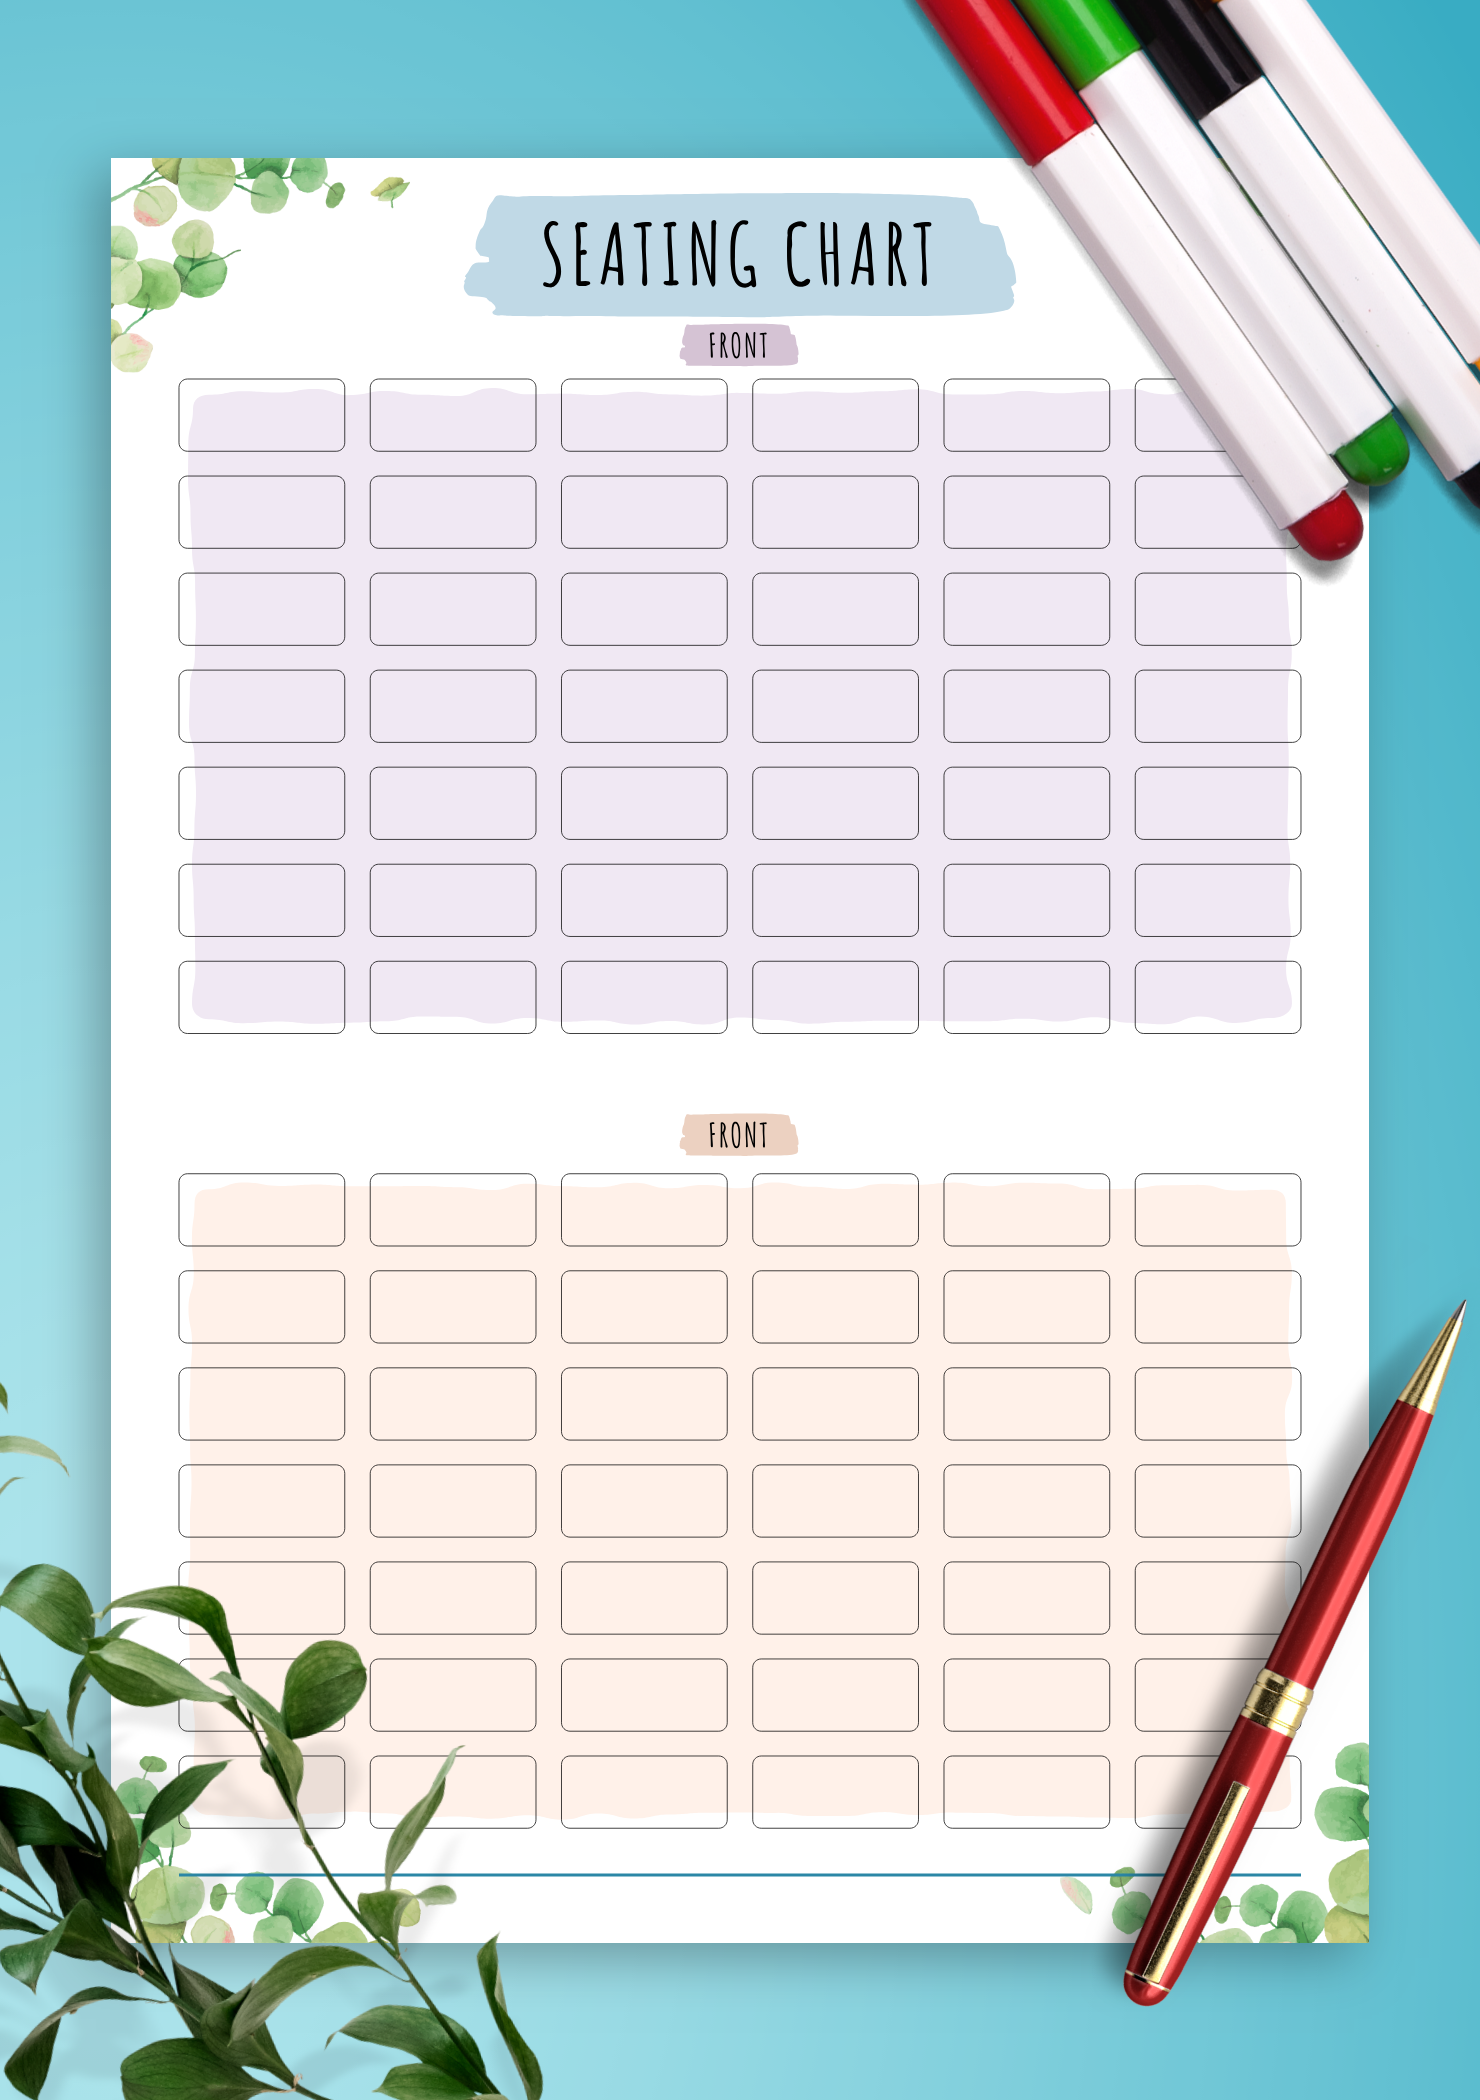 photo relating to Printable Seating Chart identify Absolutely free Printable Cl Attendance Seating Chart - Floral